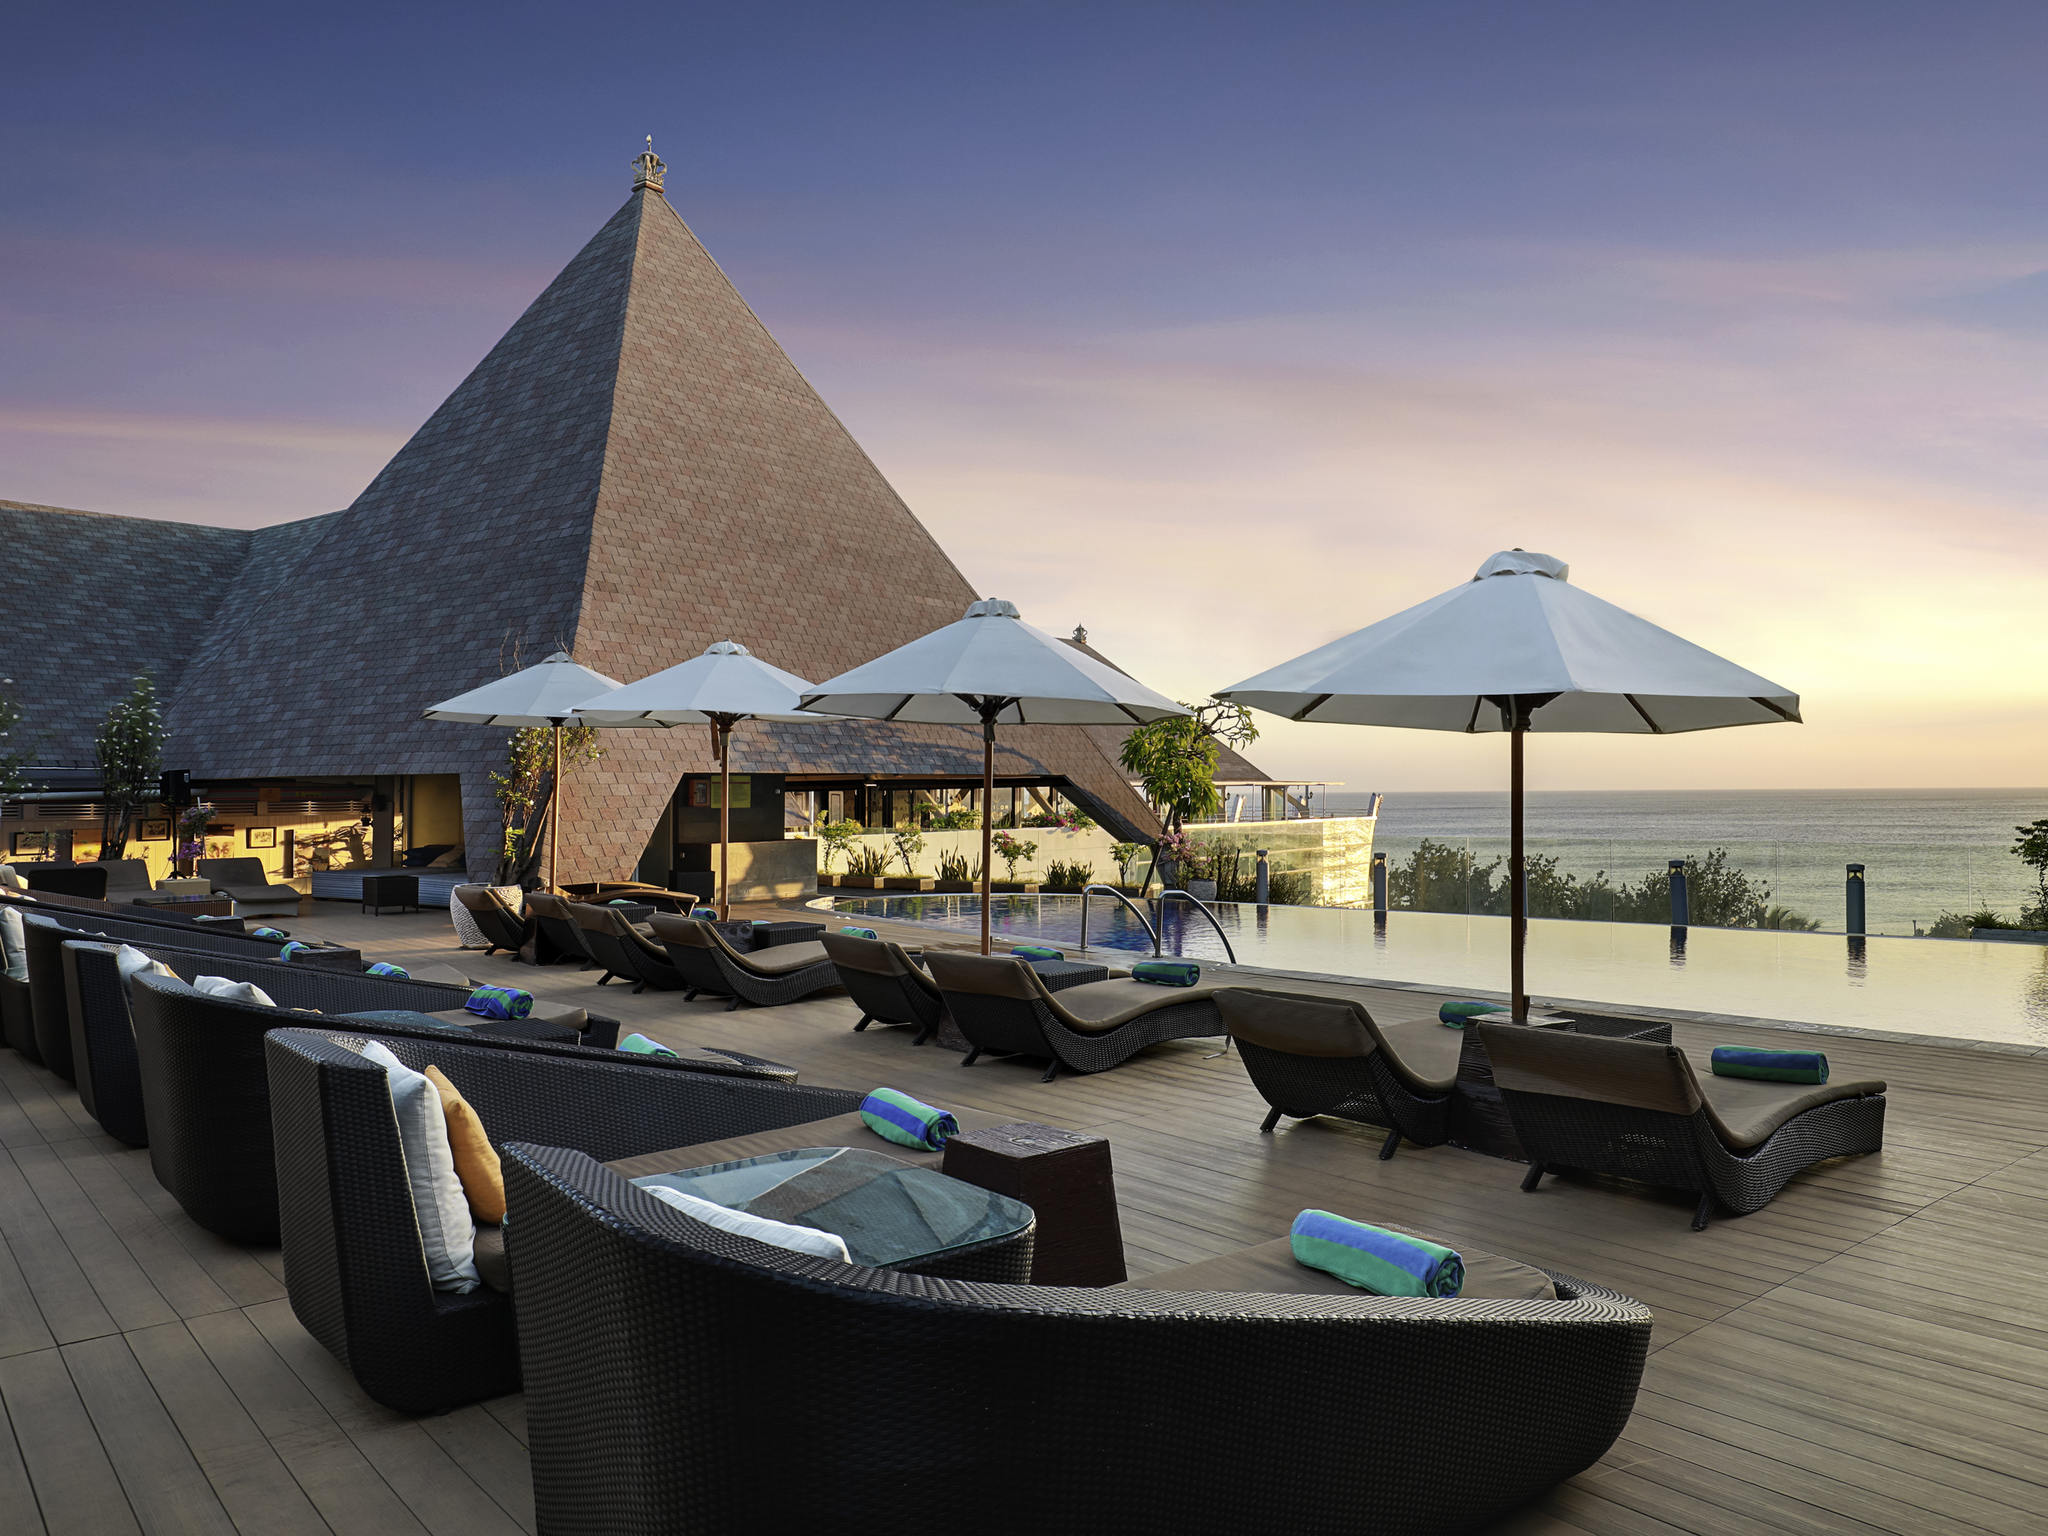 The Kuta Beach Heritage Hotel Bali